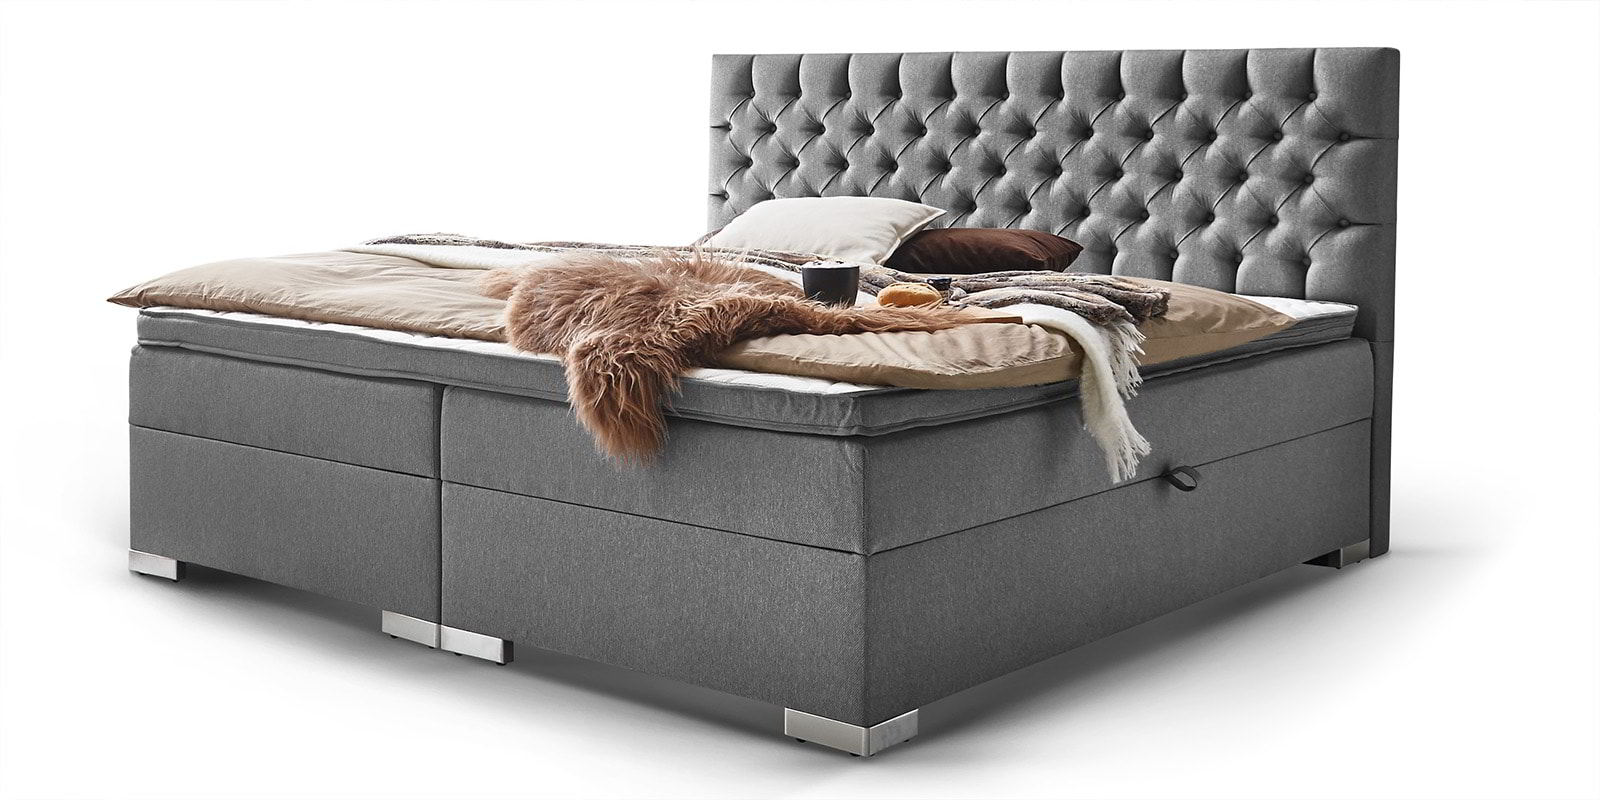 Boxspringbett mit Bettkasten London grau